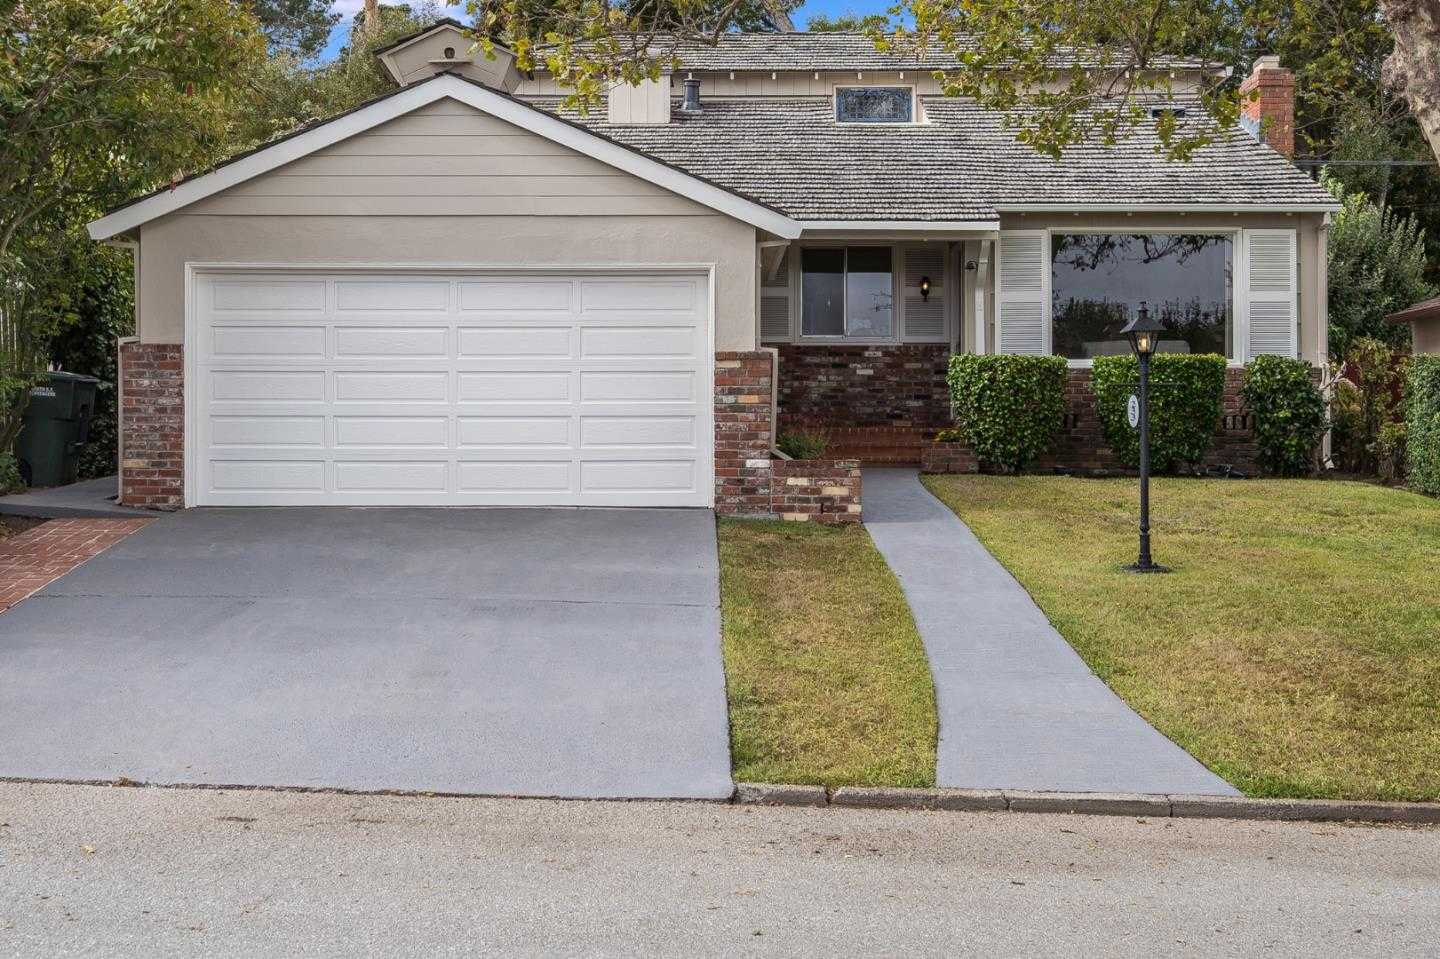 $1,629,000 - 4Br/2Ba -  for Sale in Millbrae